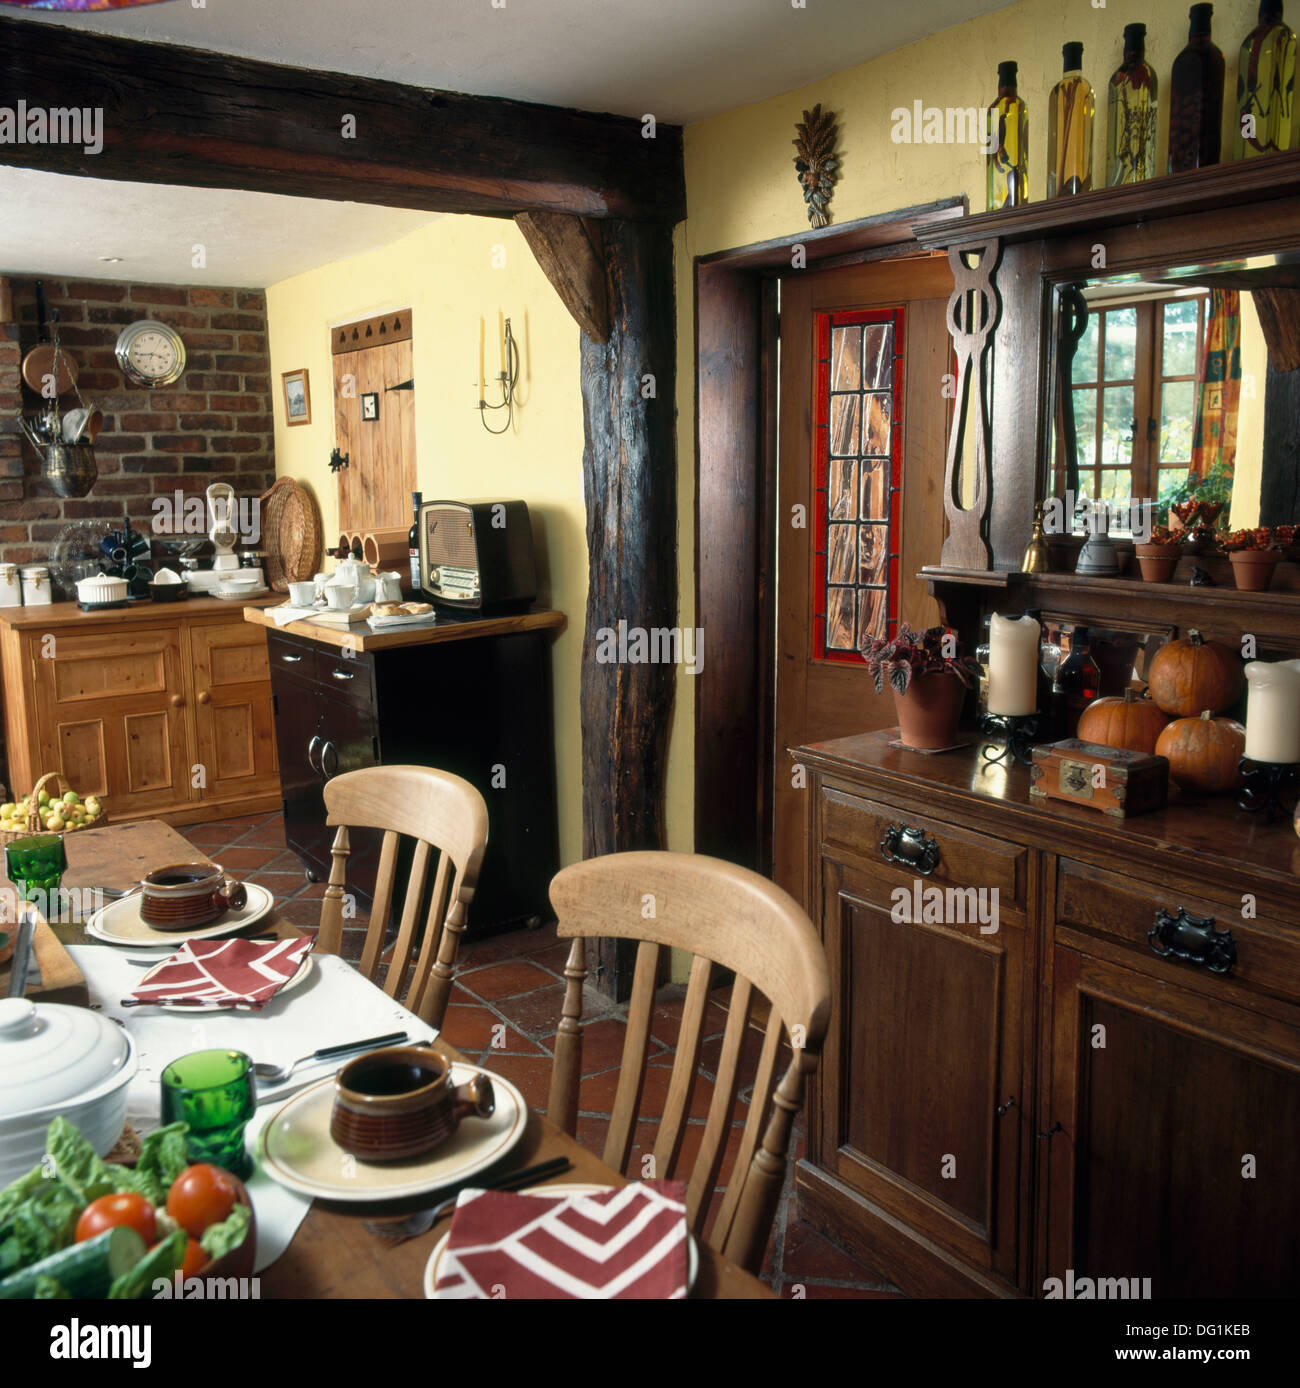 Dark Wood Supporting Beam And Edwardian Style Dresser In Traditional Kitchen Dining Room